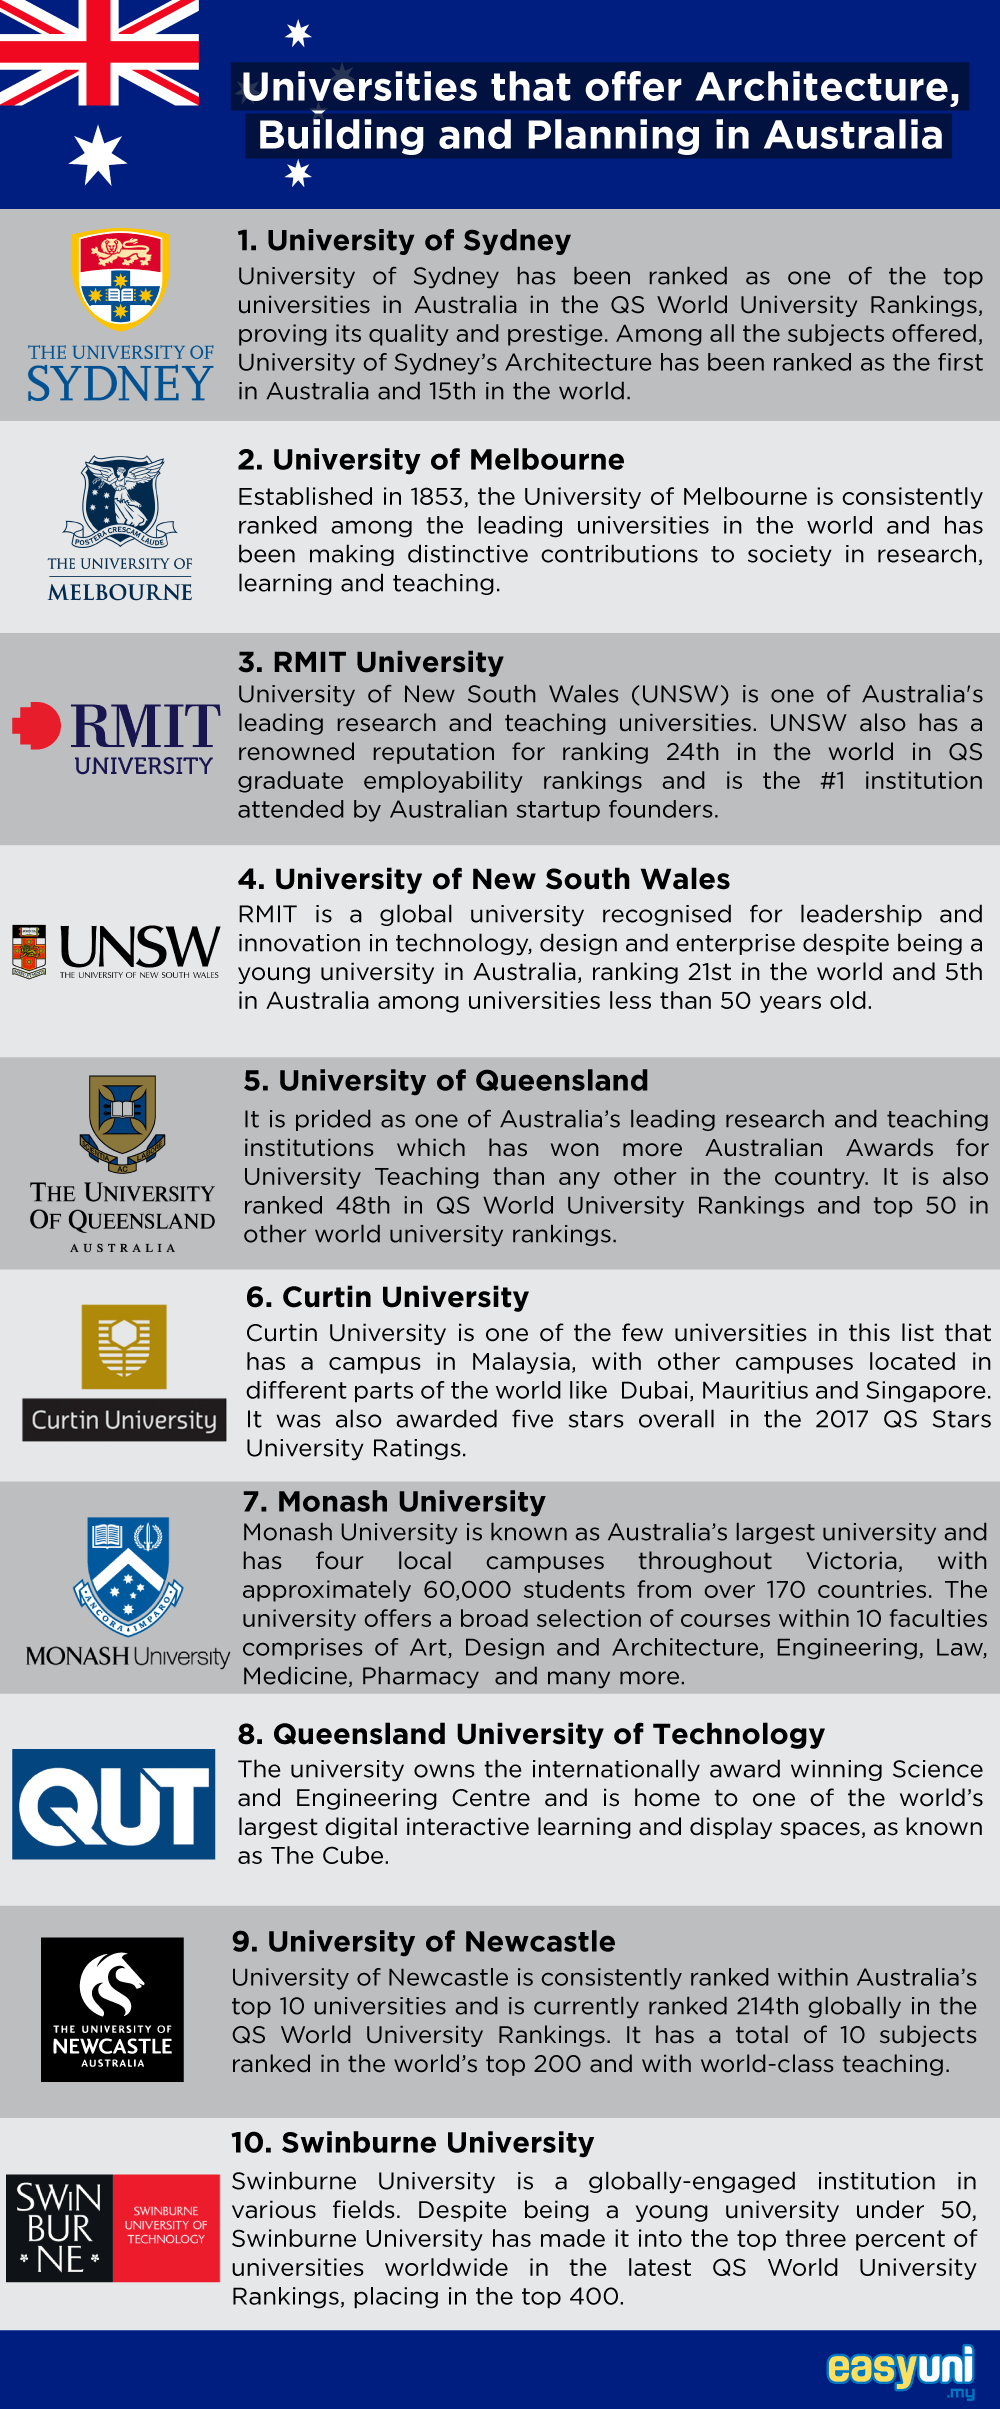 Universities that offer Architecture, Building and Planning in Australia Infographic